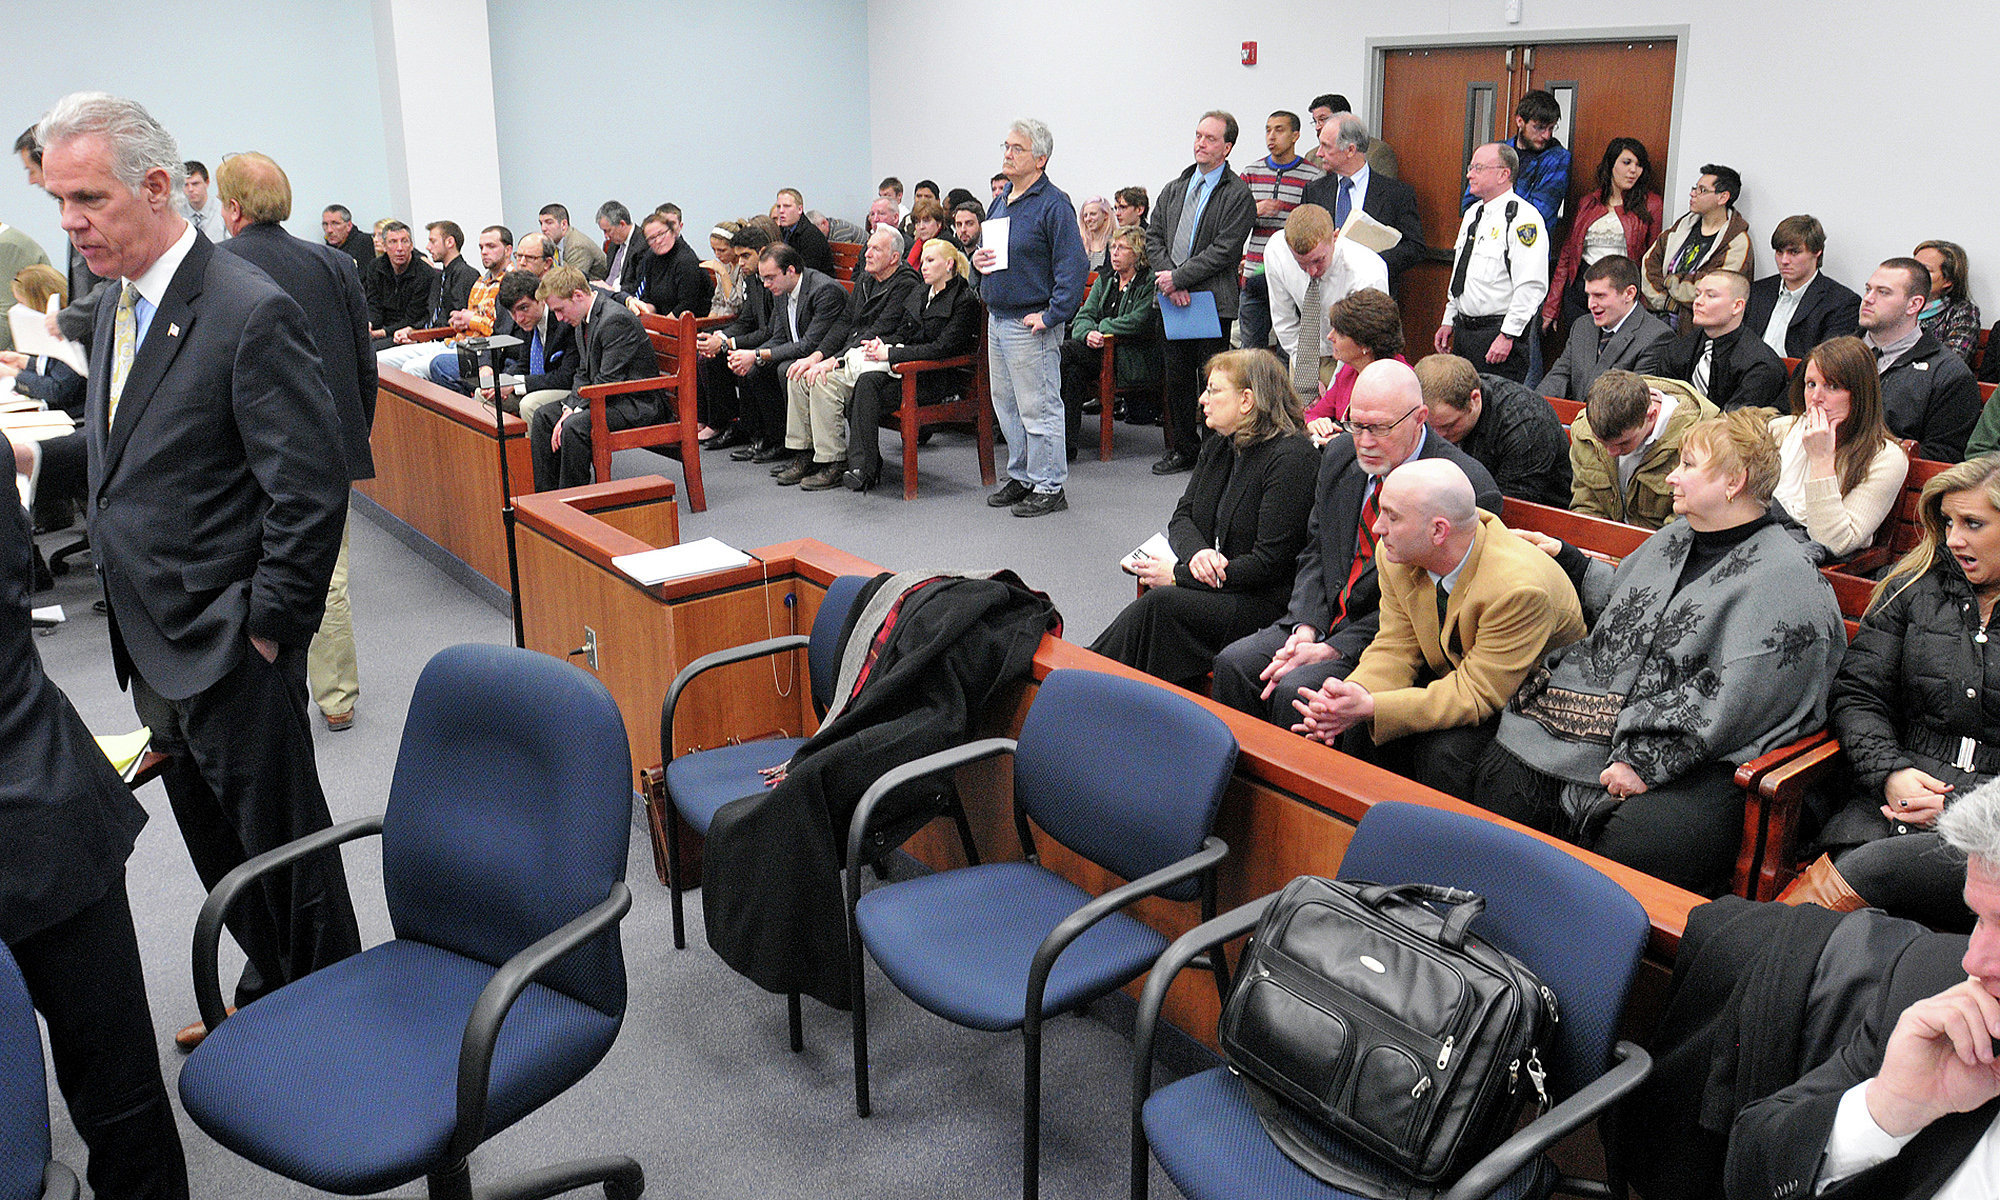 People wait in a crowded courtroom at the Eastern Hampshire District Court in Belchertown, Mass., Monday, March 10, 2014 for individual arraignments of students arrested at a pre-St. Patrick's Day celebration at the University of Massachusetts, Amherst.